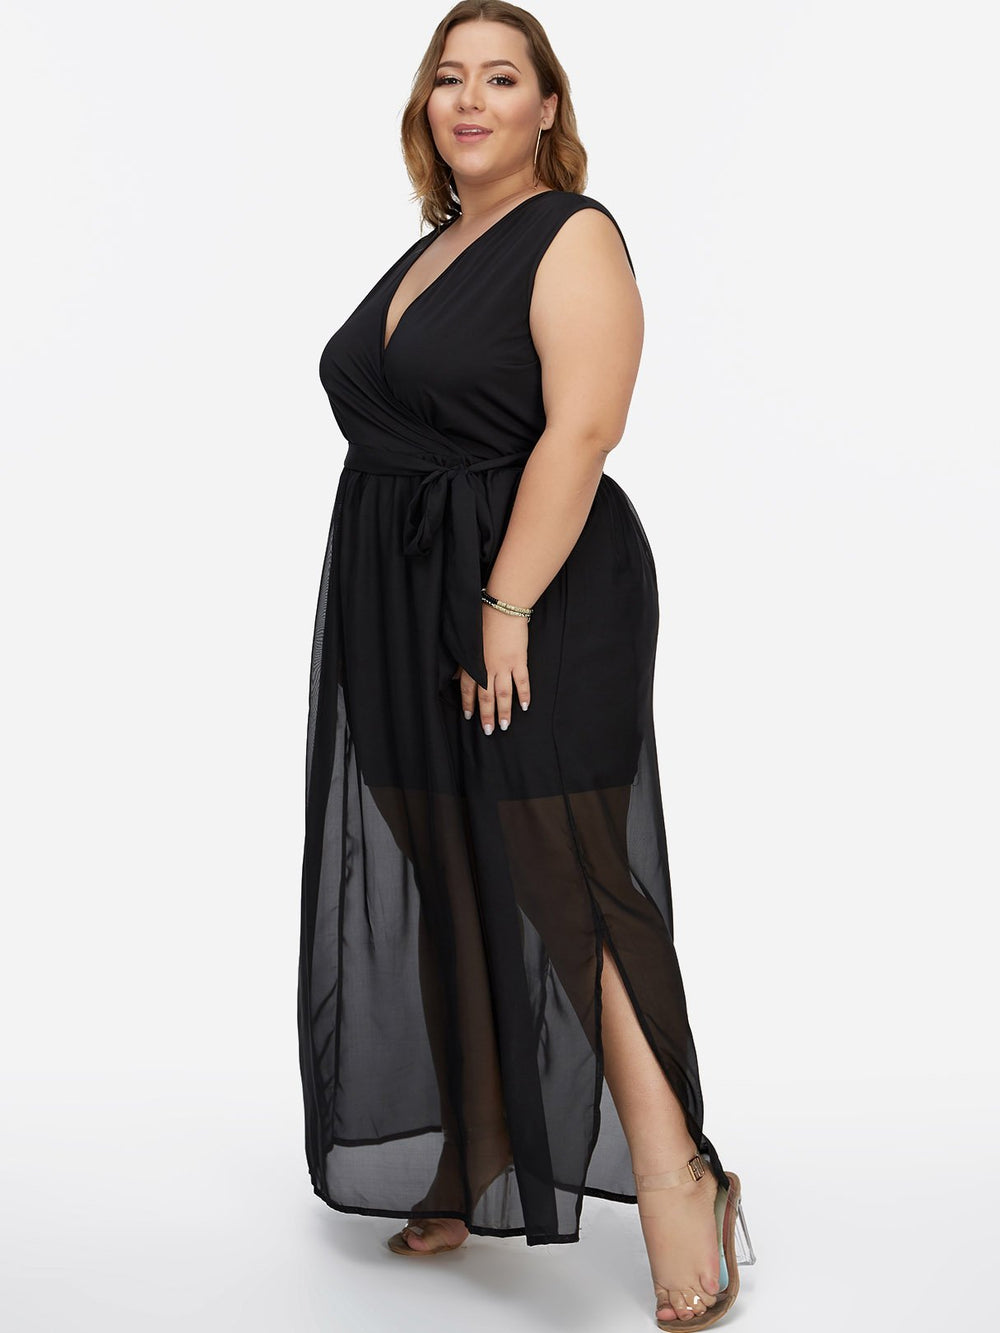 Ladies Black Plus Size Dresses